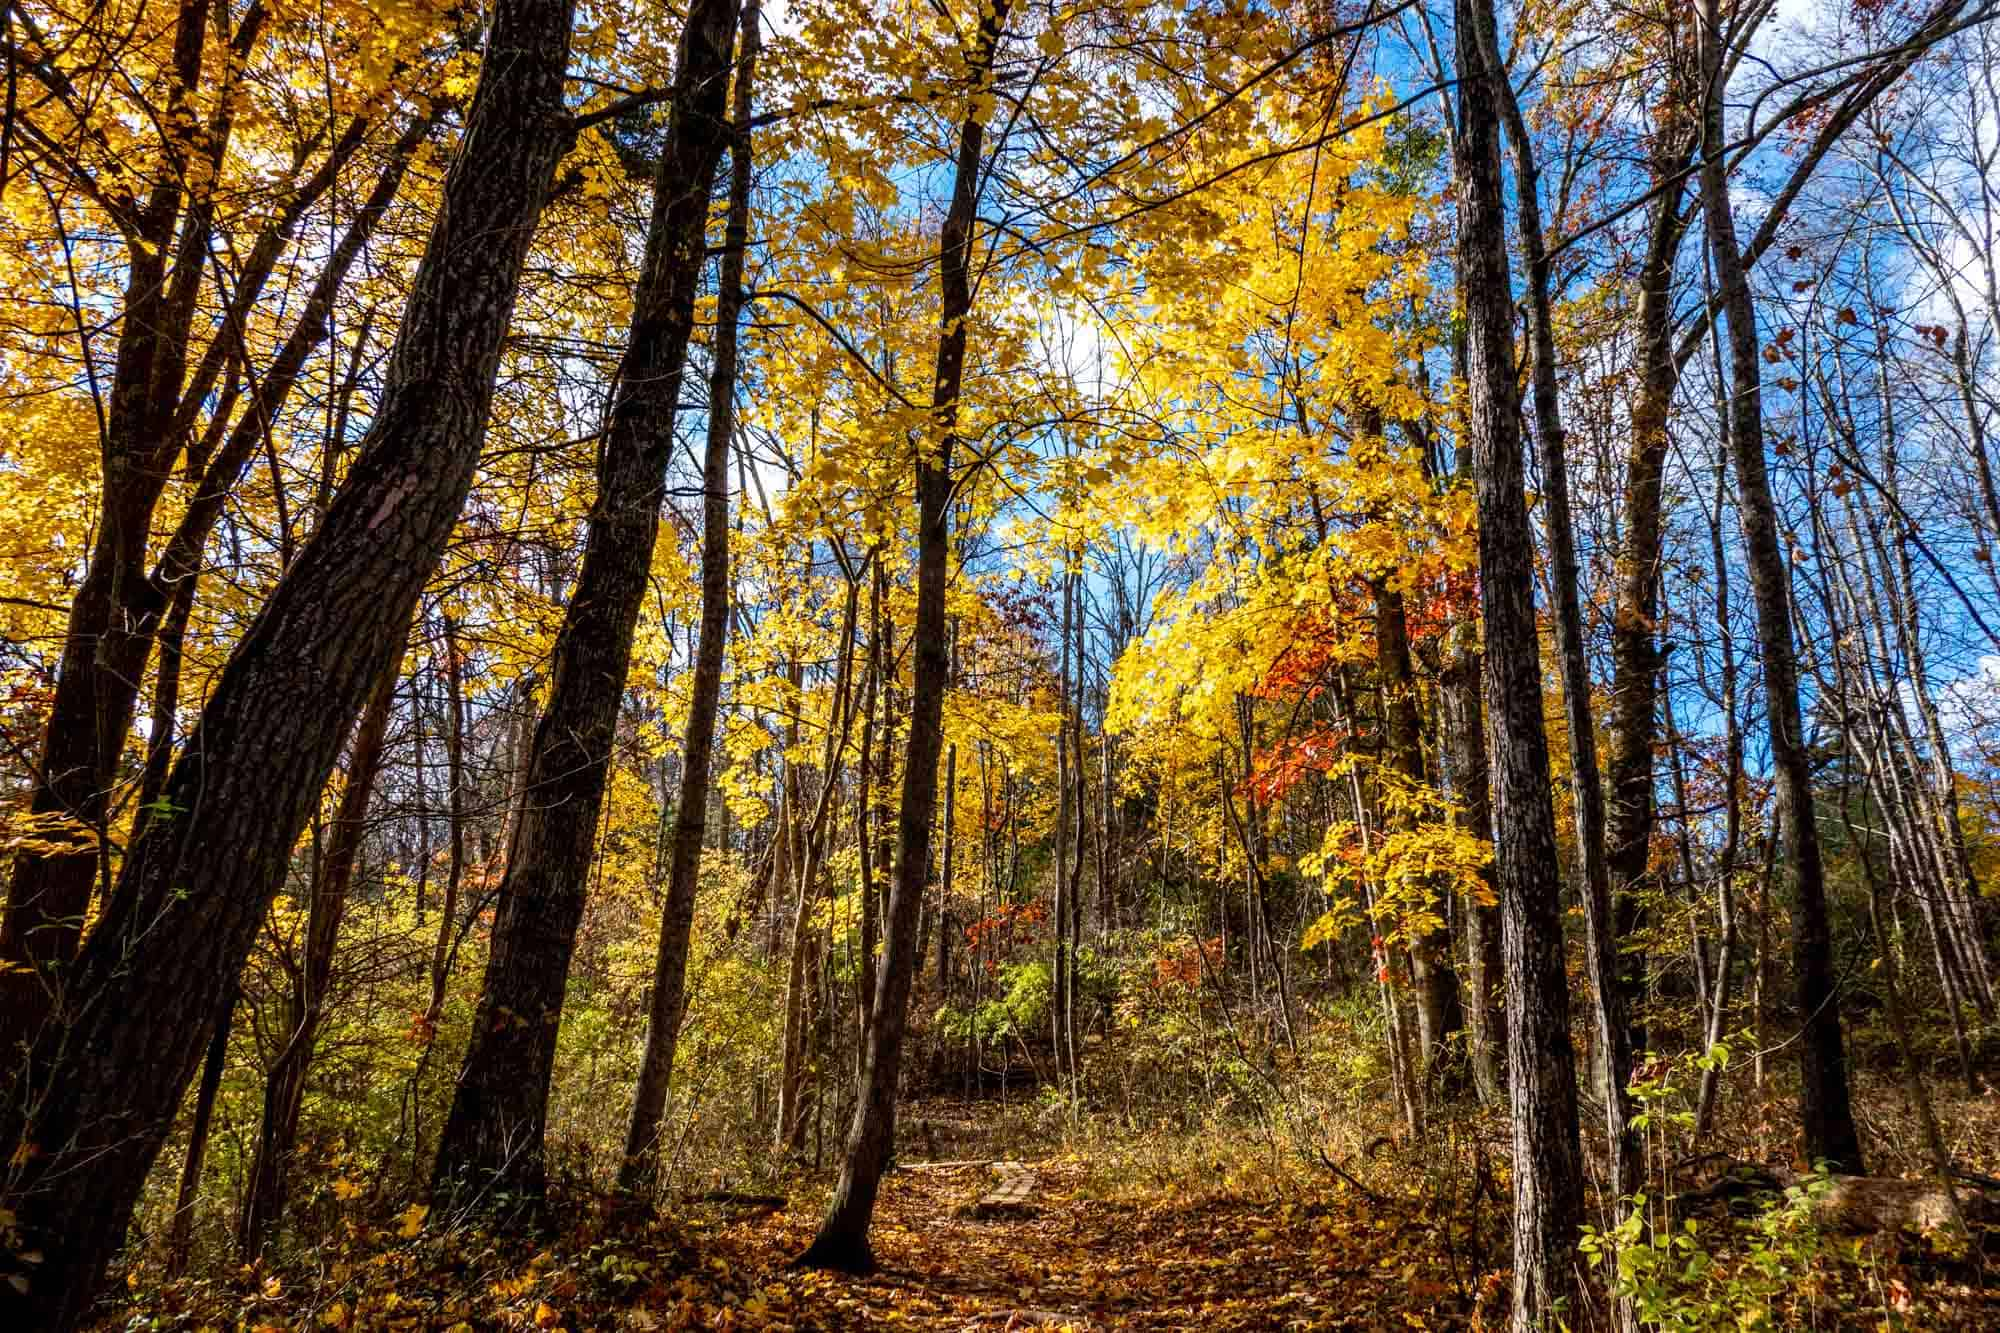 Woods in the late fall with some bare trees and others covered in bright yellow leaves